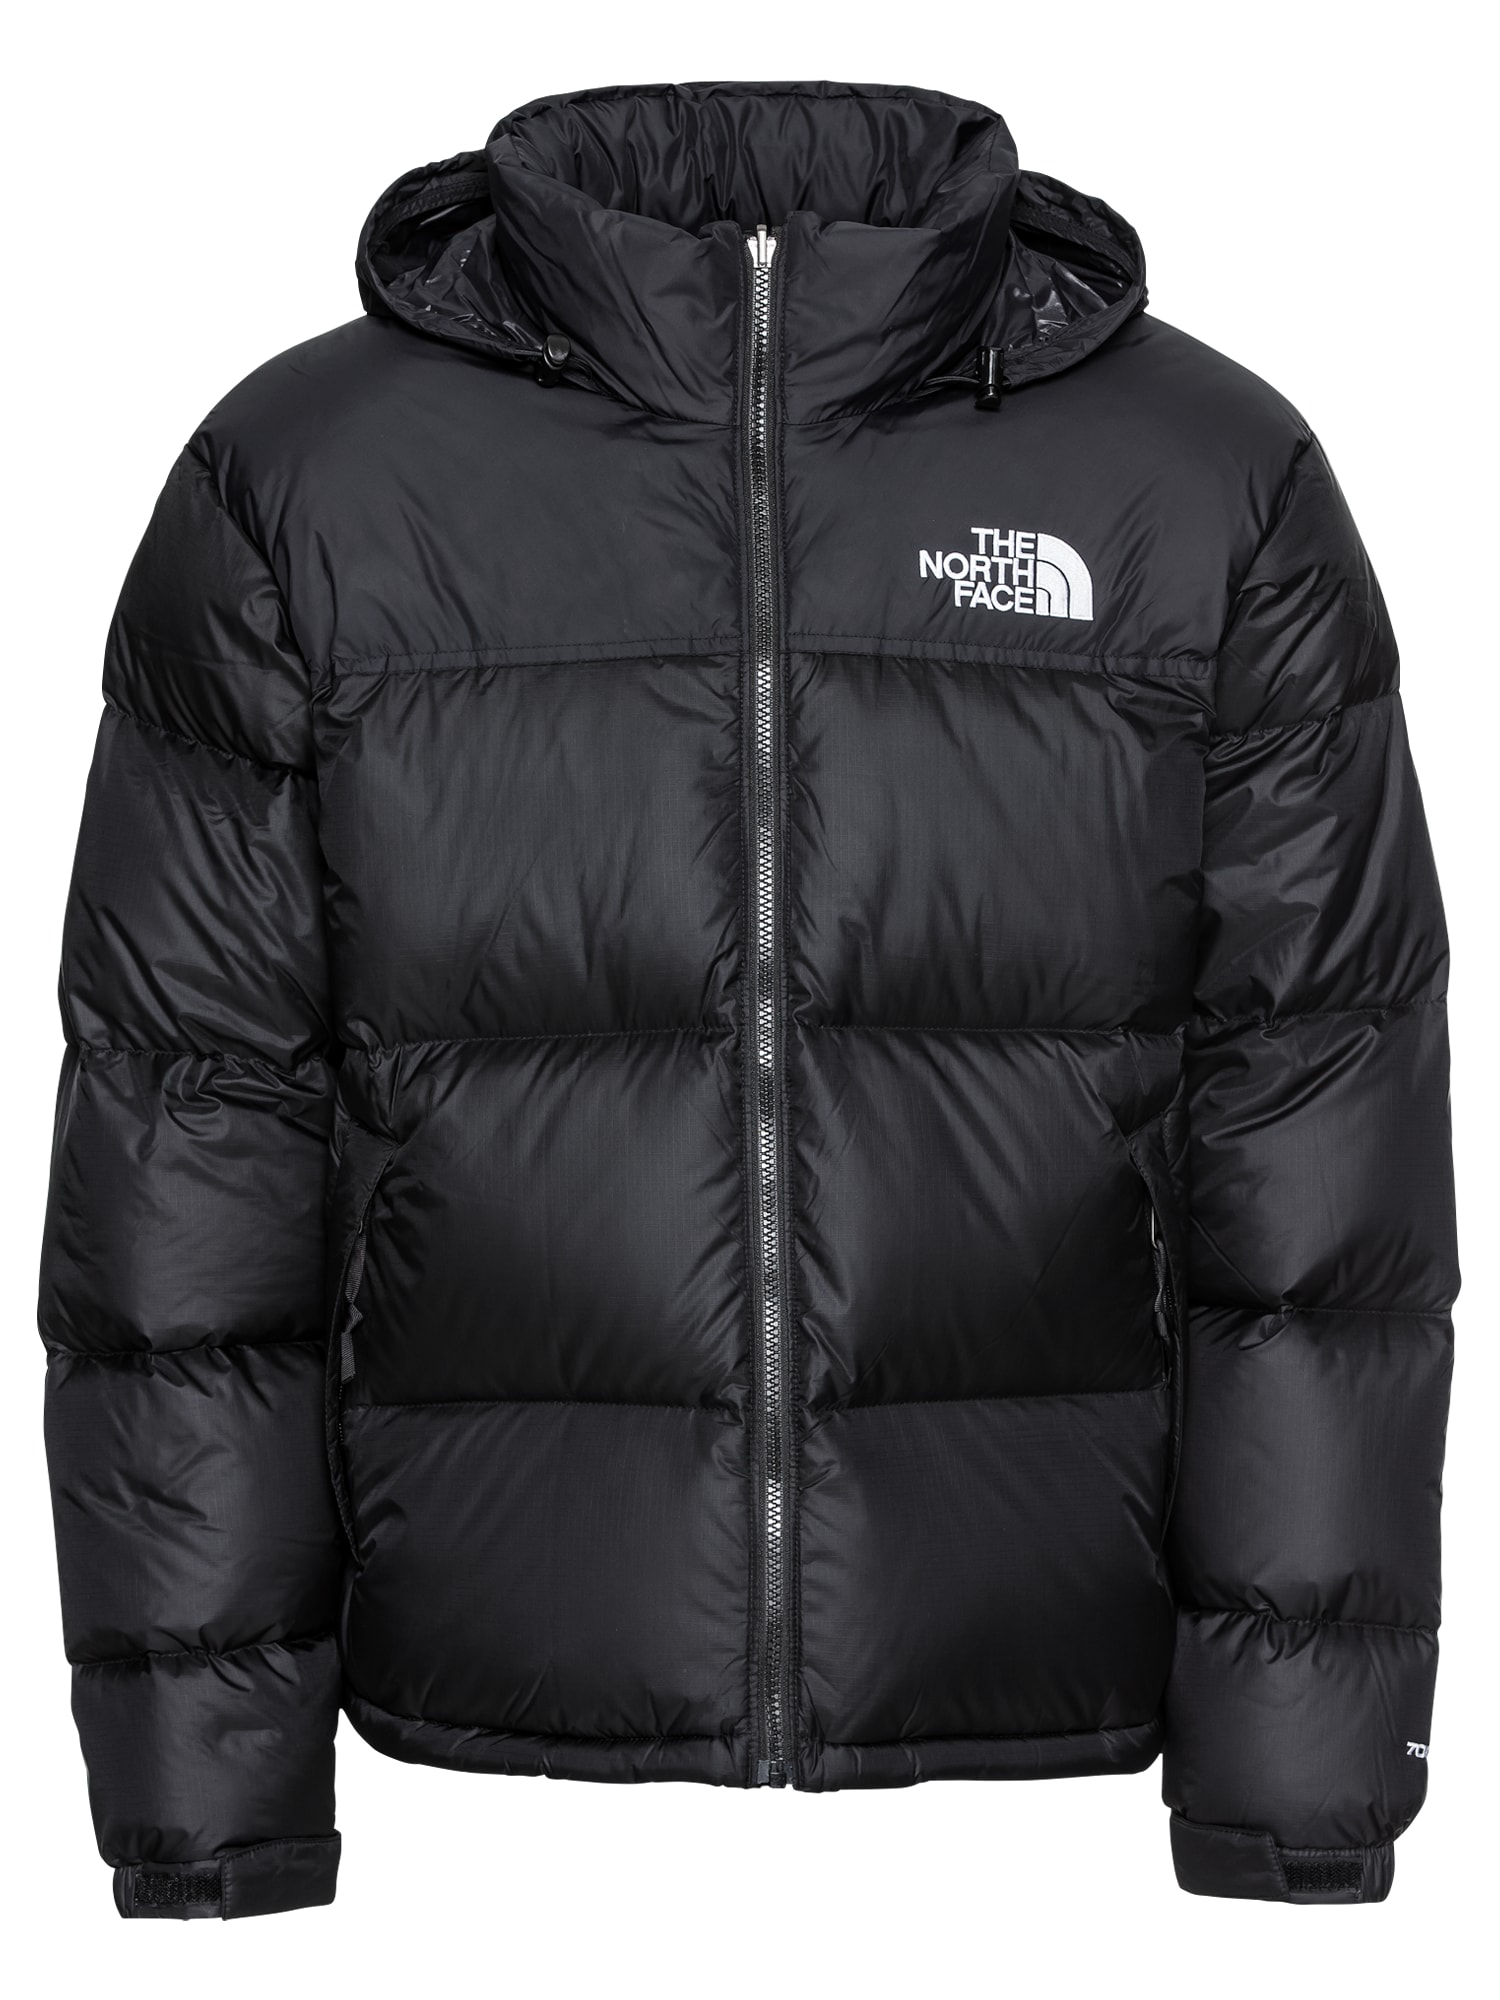 THE NORTH FACE Zimní bunda M 1996 RTO NUPTSE JKT černá The North Face